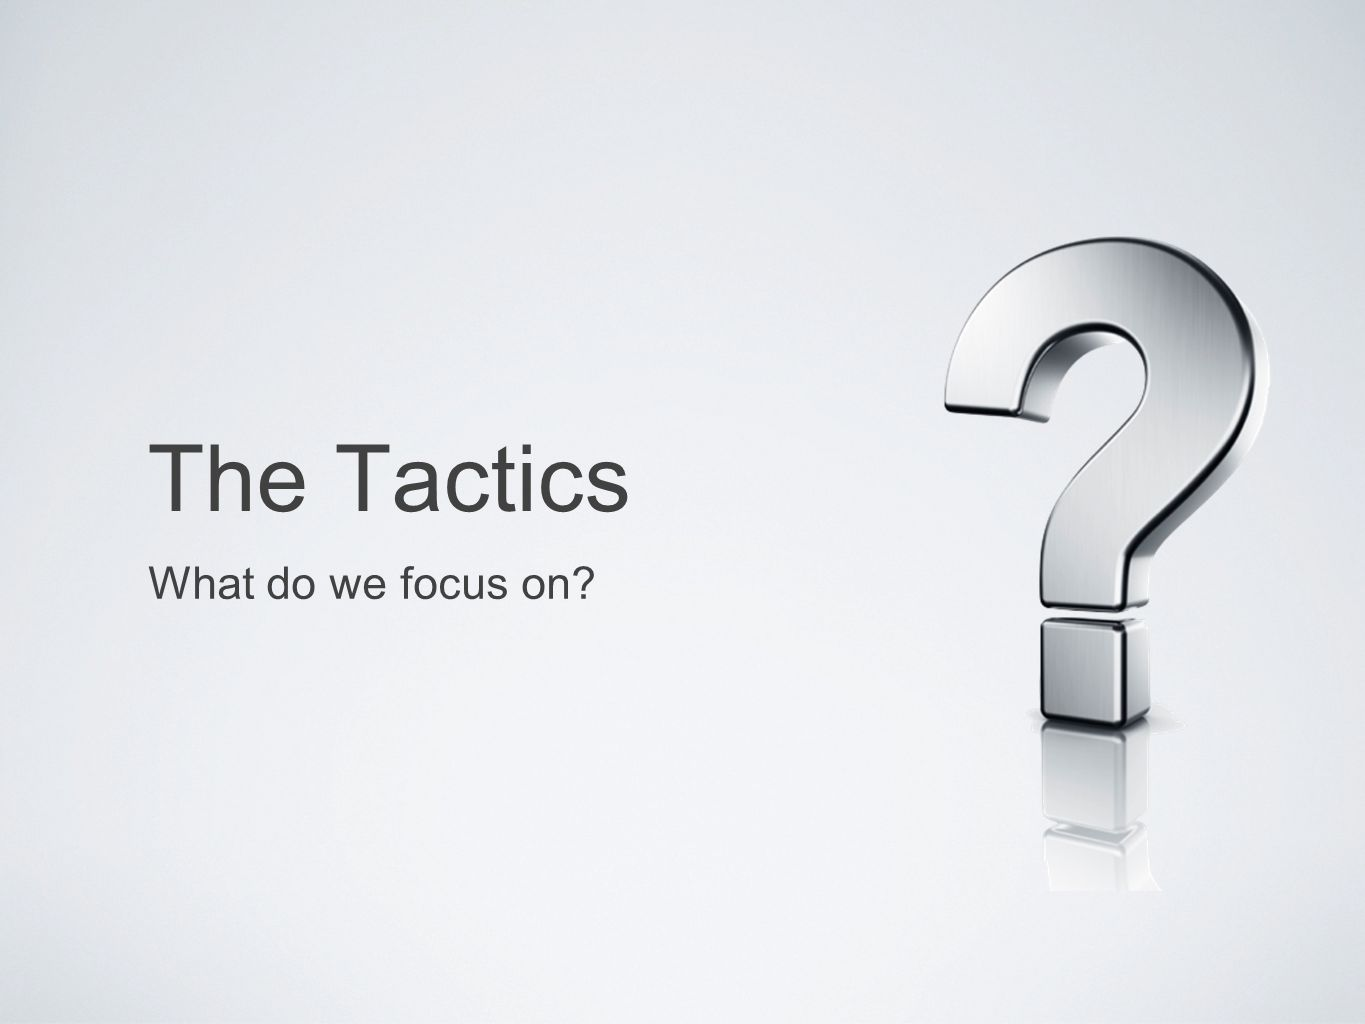 The Tactics What do we focus on